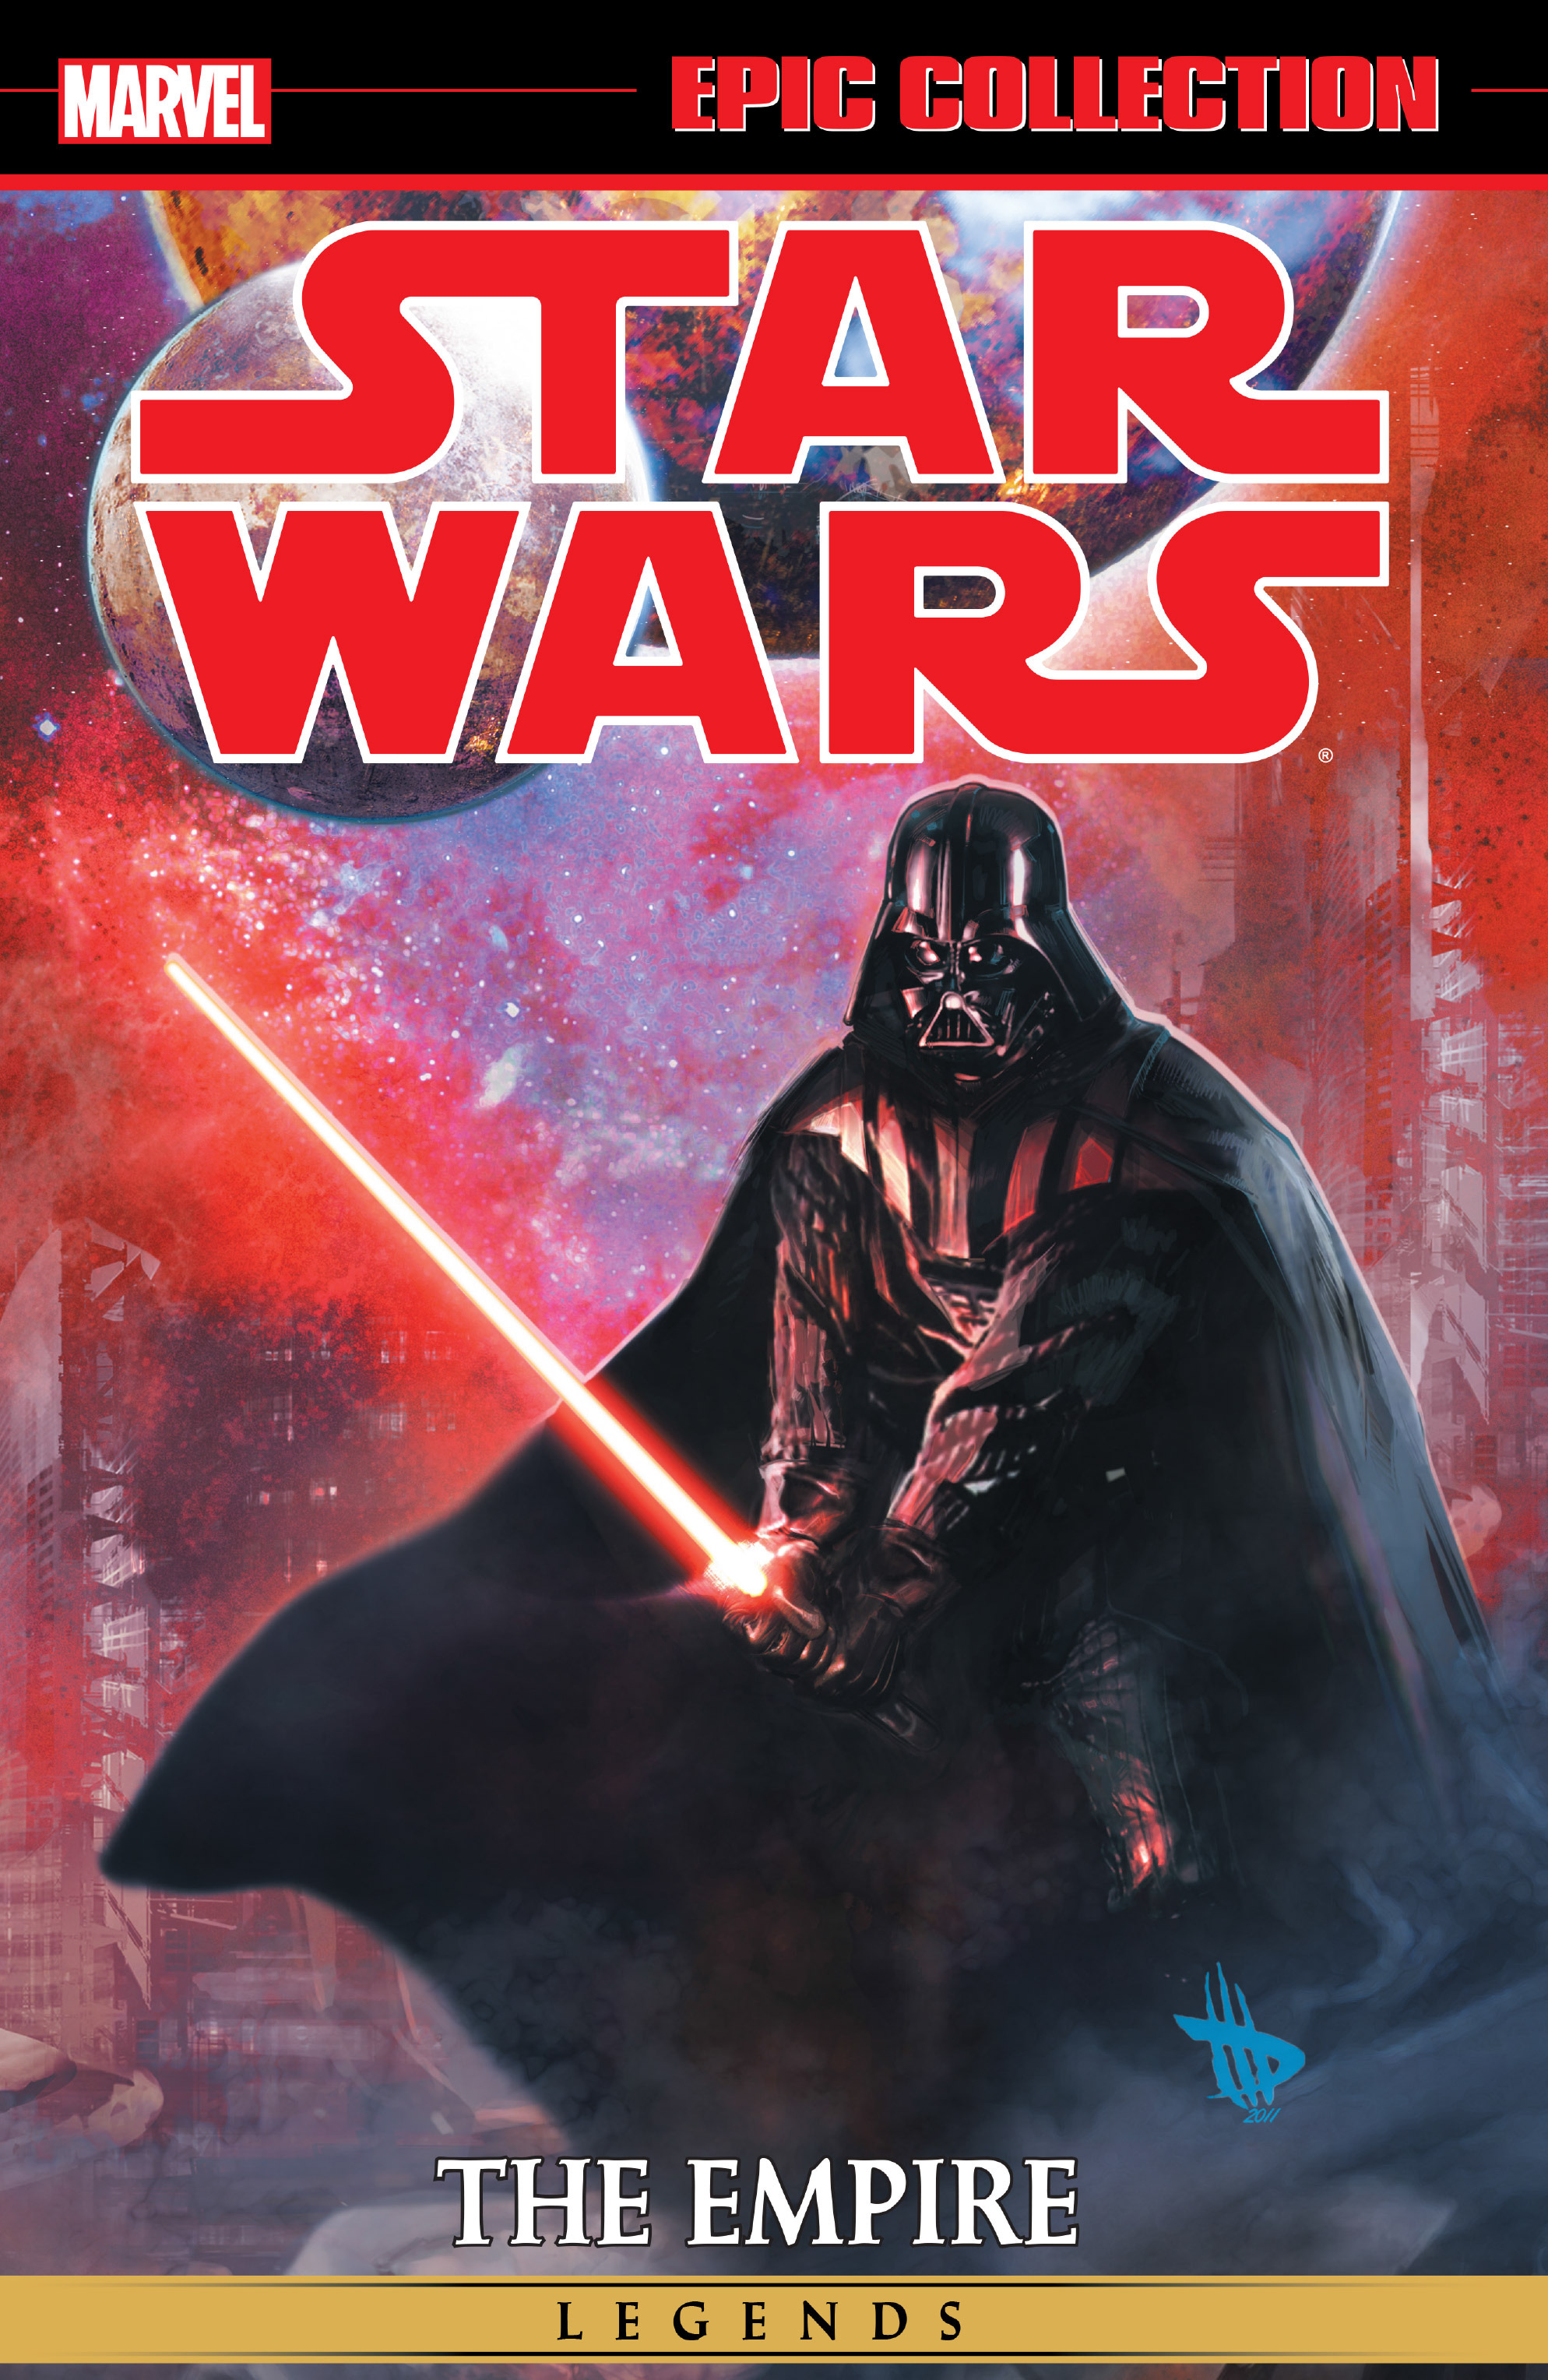 File:Star Wars Legends Epic Collection The Empire Vol 1 2.jpg